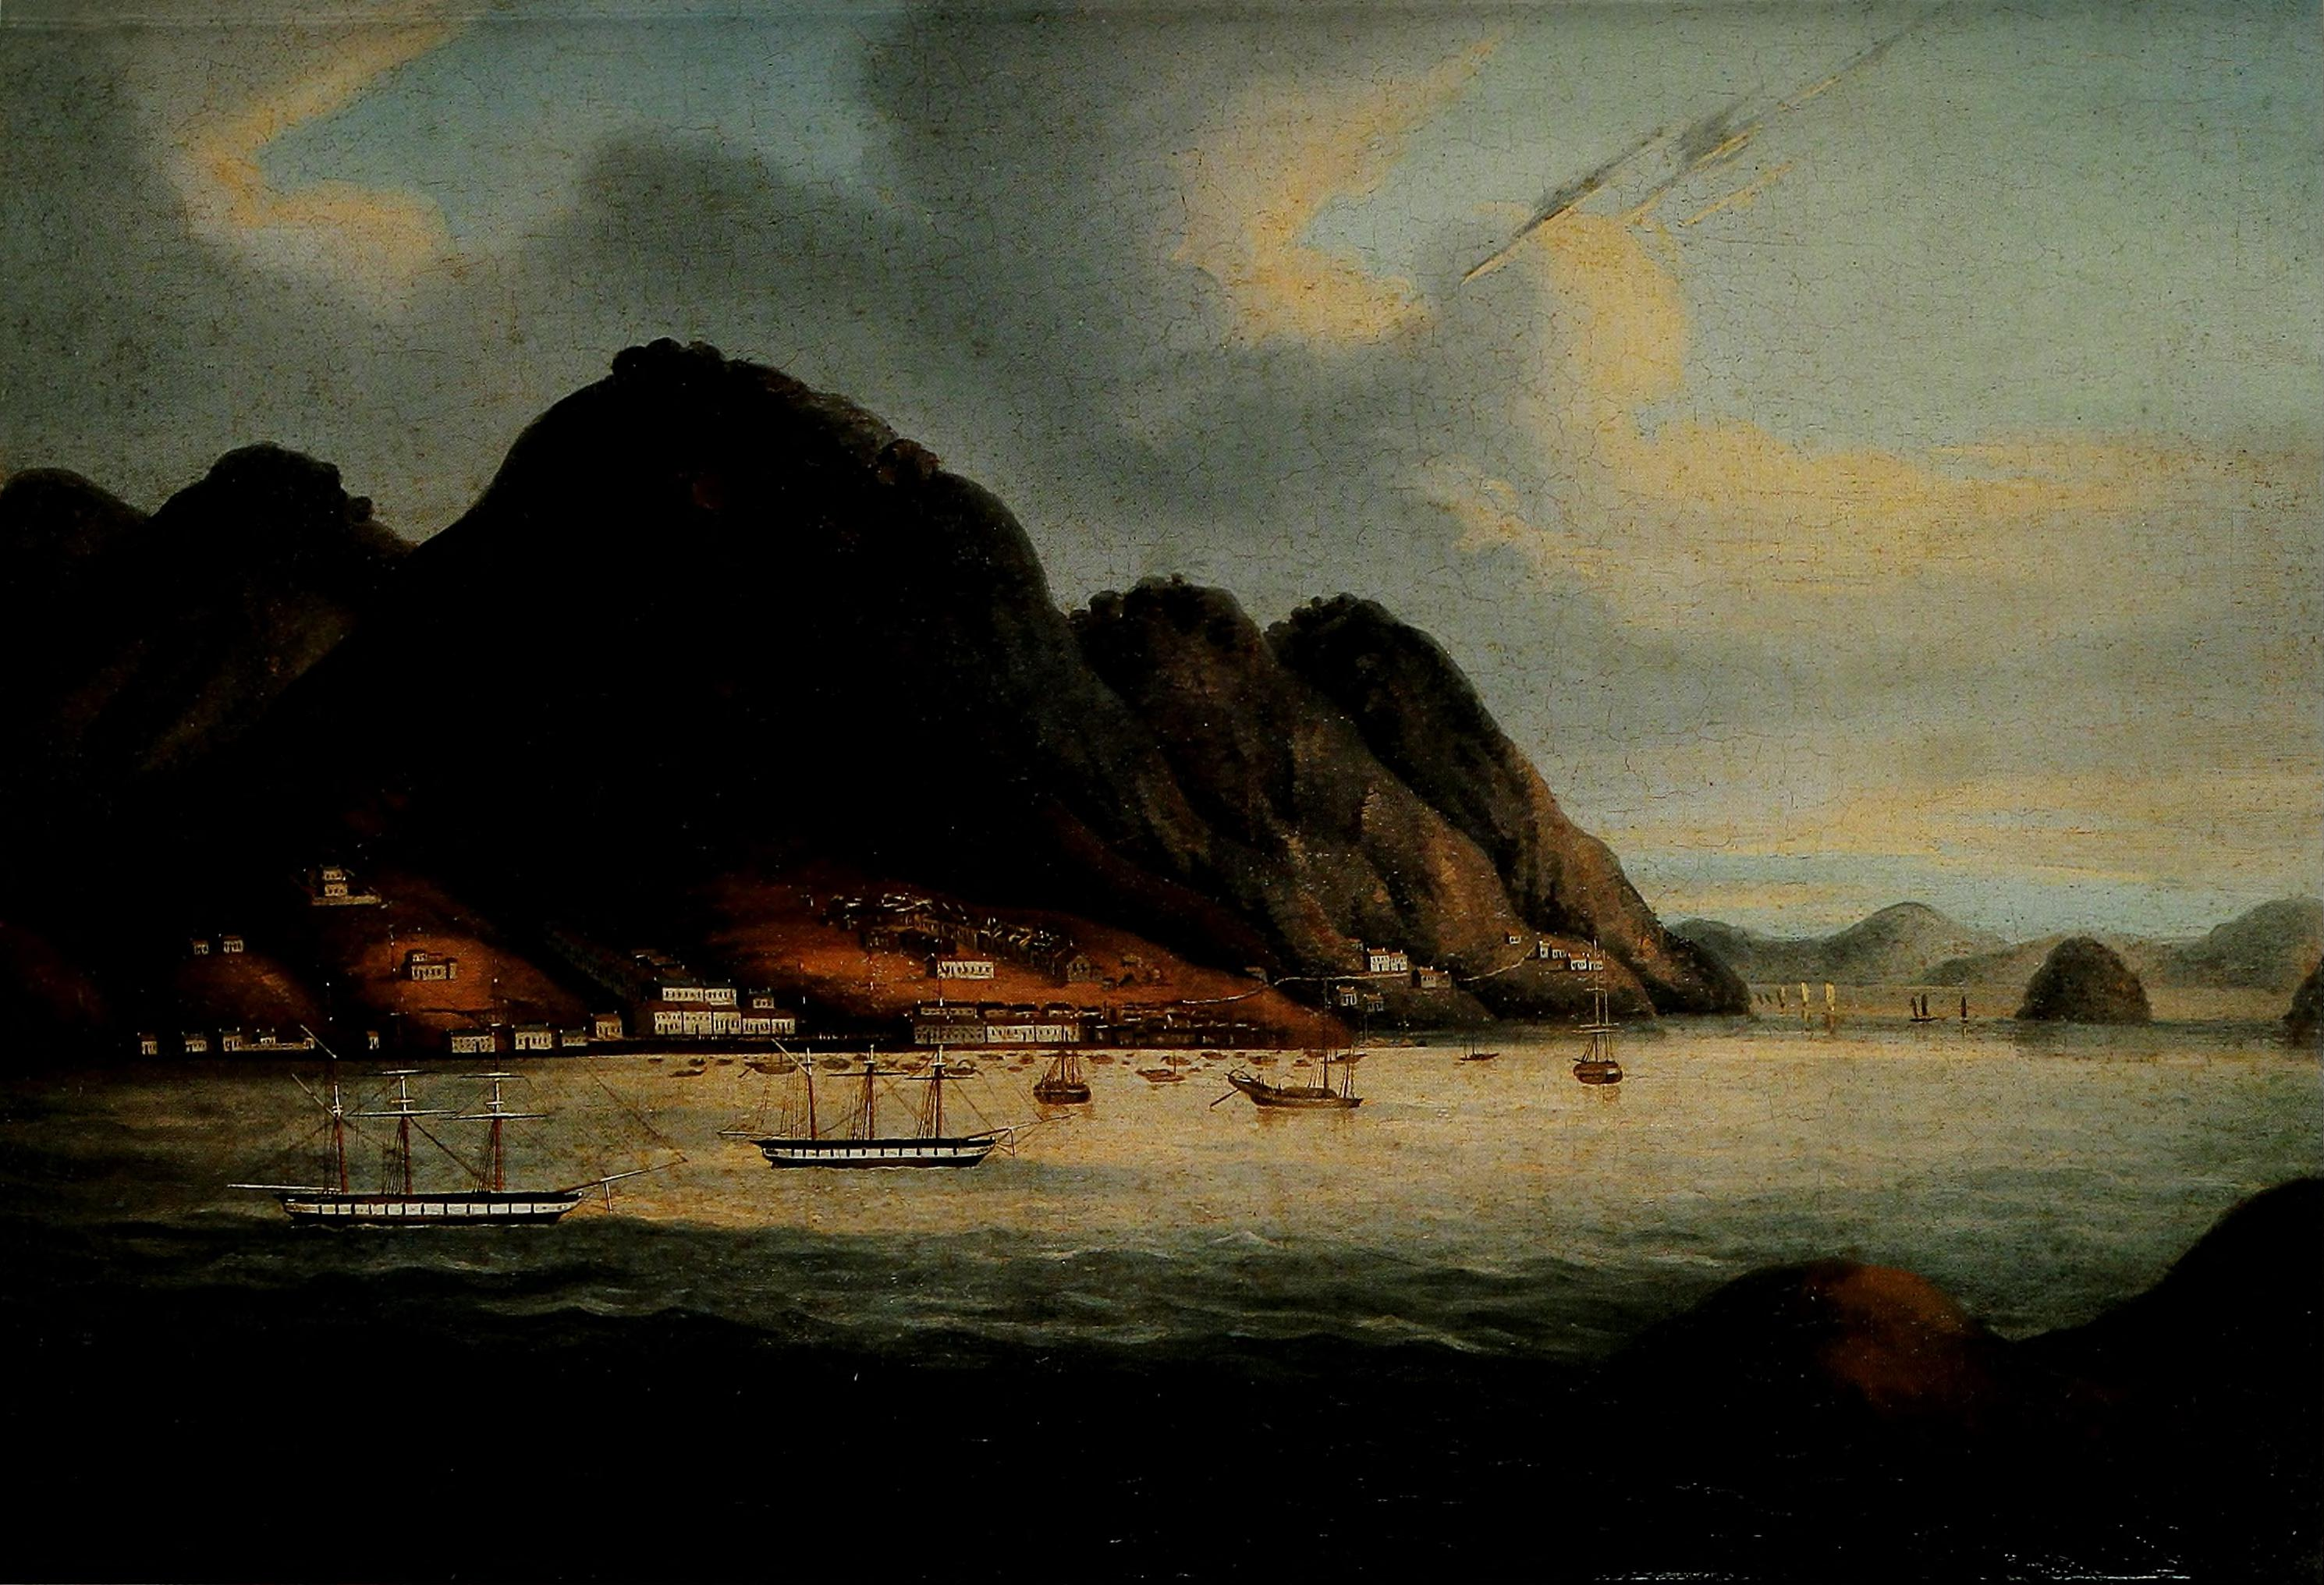 Possibly the earliest oil painting of Hong Kong Island, showing the path along the north shore (right) as it approaches the early waterfront settlement which became the town of Victoria. Dating from the mid-19th century and published in An Illustrated History of Hong Kong by Nigel Cameron. Hong Kong: Oxford University Press (1991). p. 102.